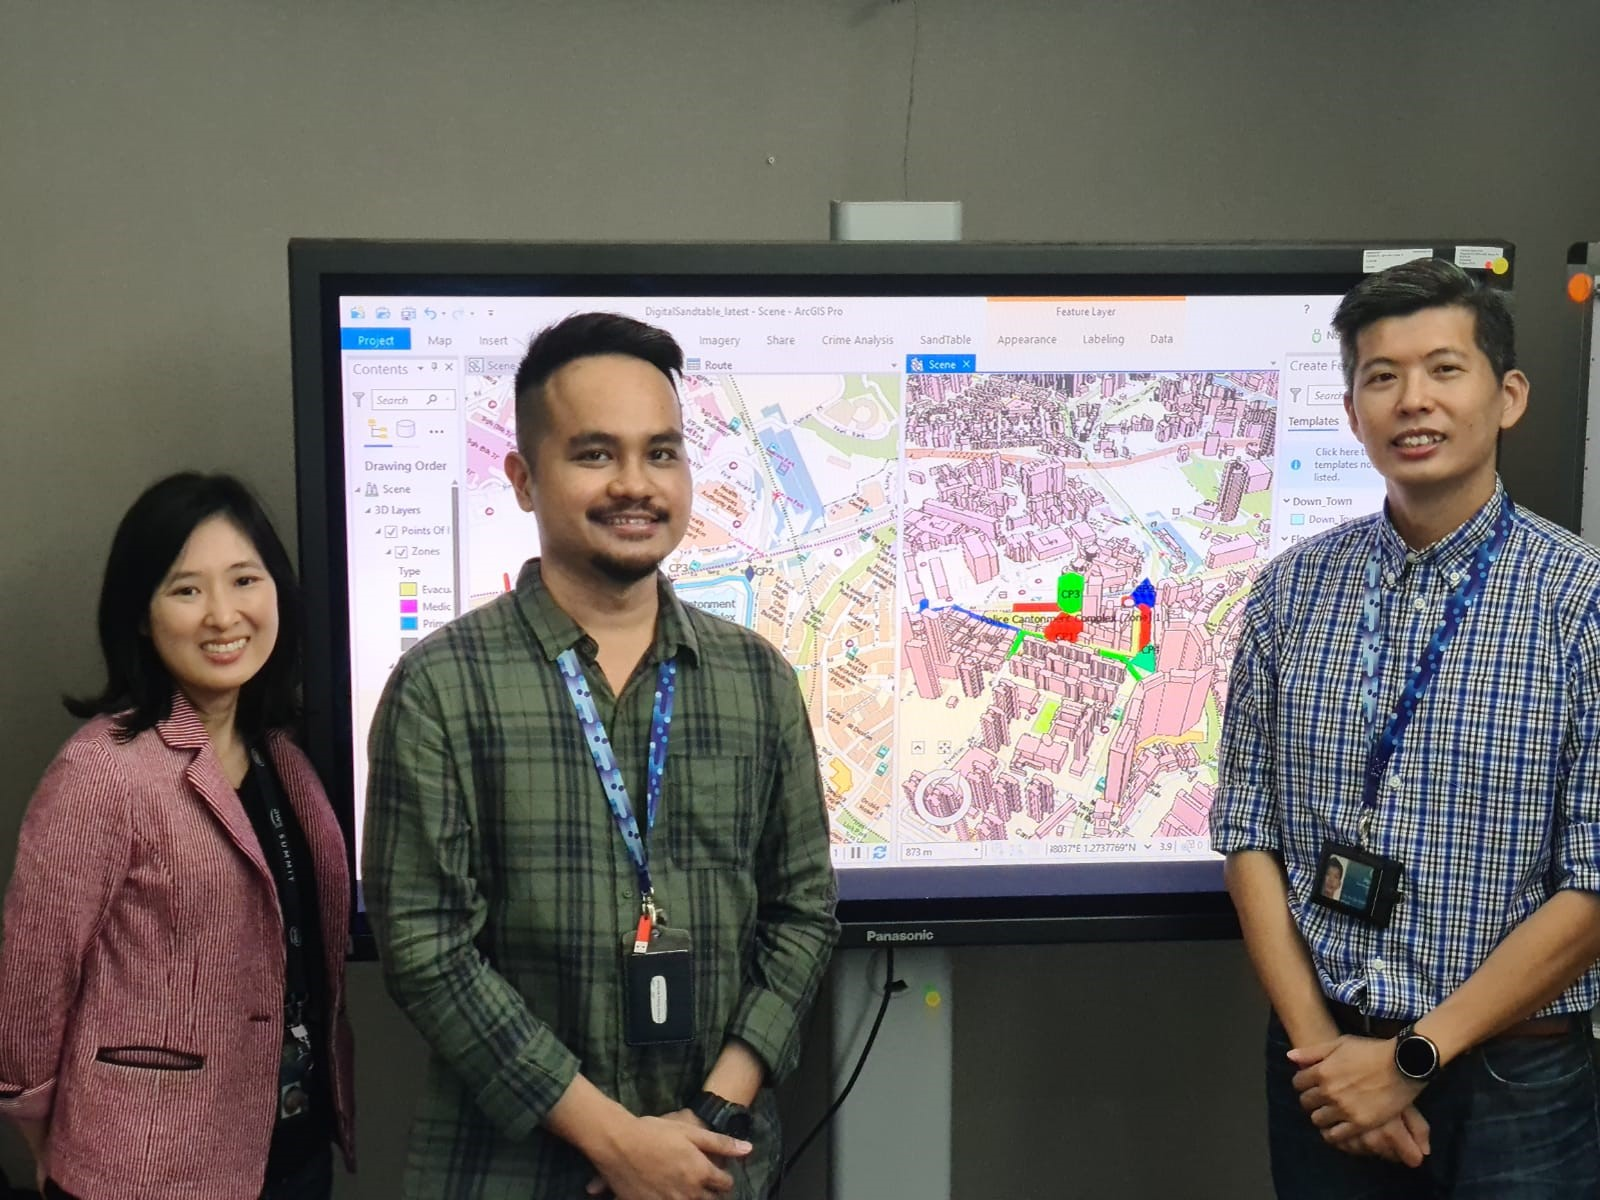 Project Manager Sarah Lee, Project Officer Muhd Fahmi Firdaus Ismail, and Lead Engineer Benson Lim from the Enterprise Platforms, Ops Infra, JCPMC.